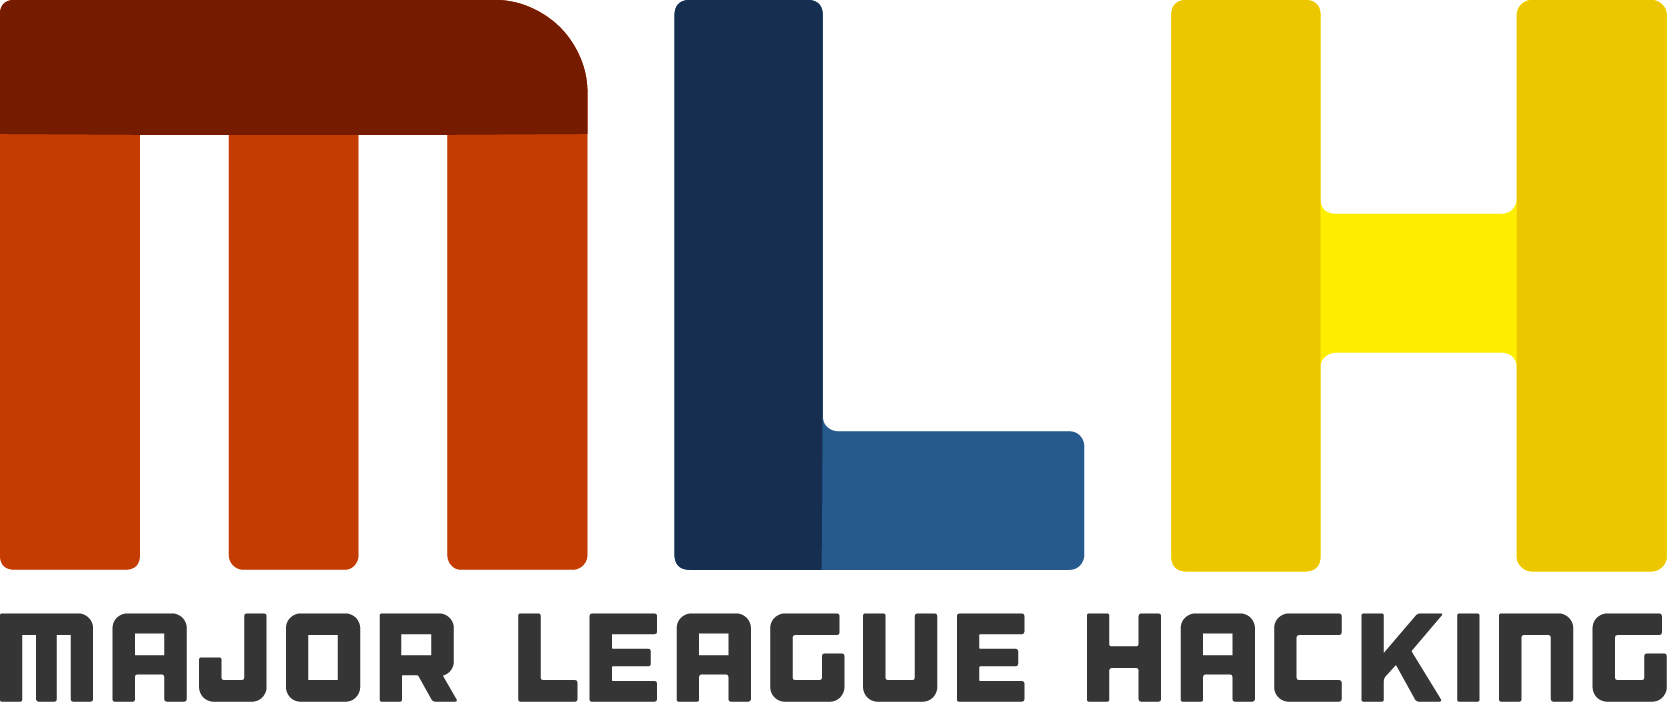 Sponsor - Major League Hacking (MLH)